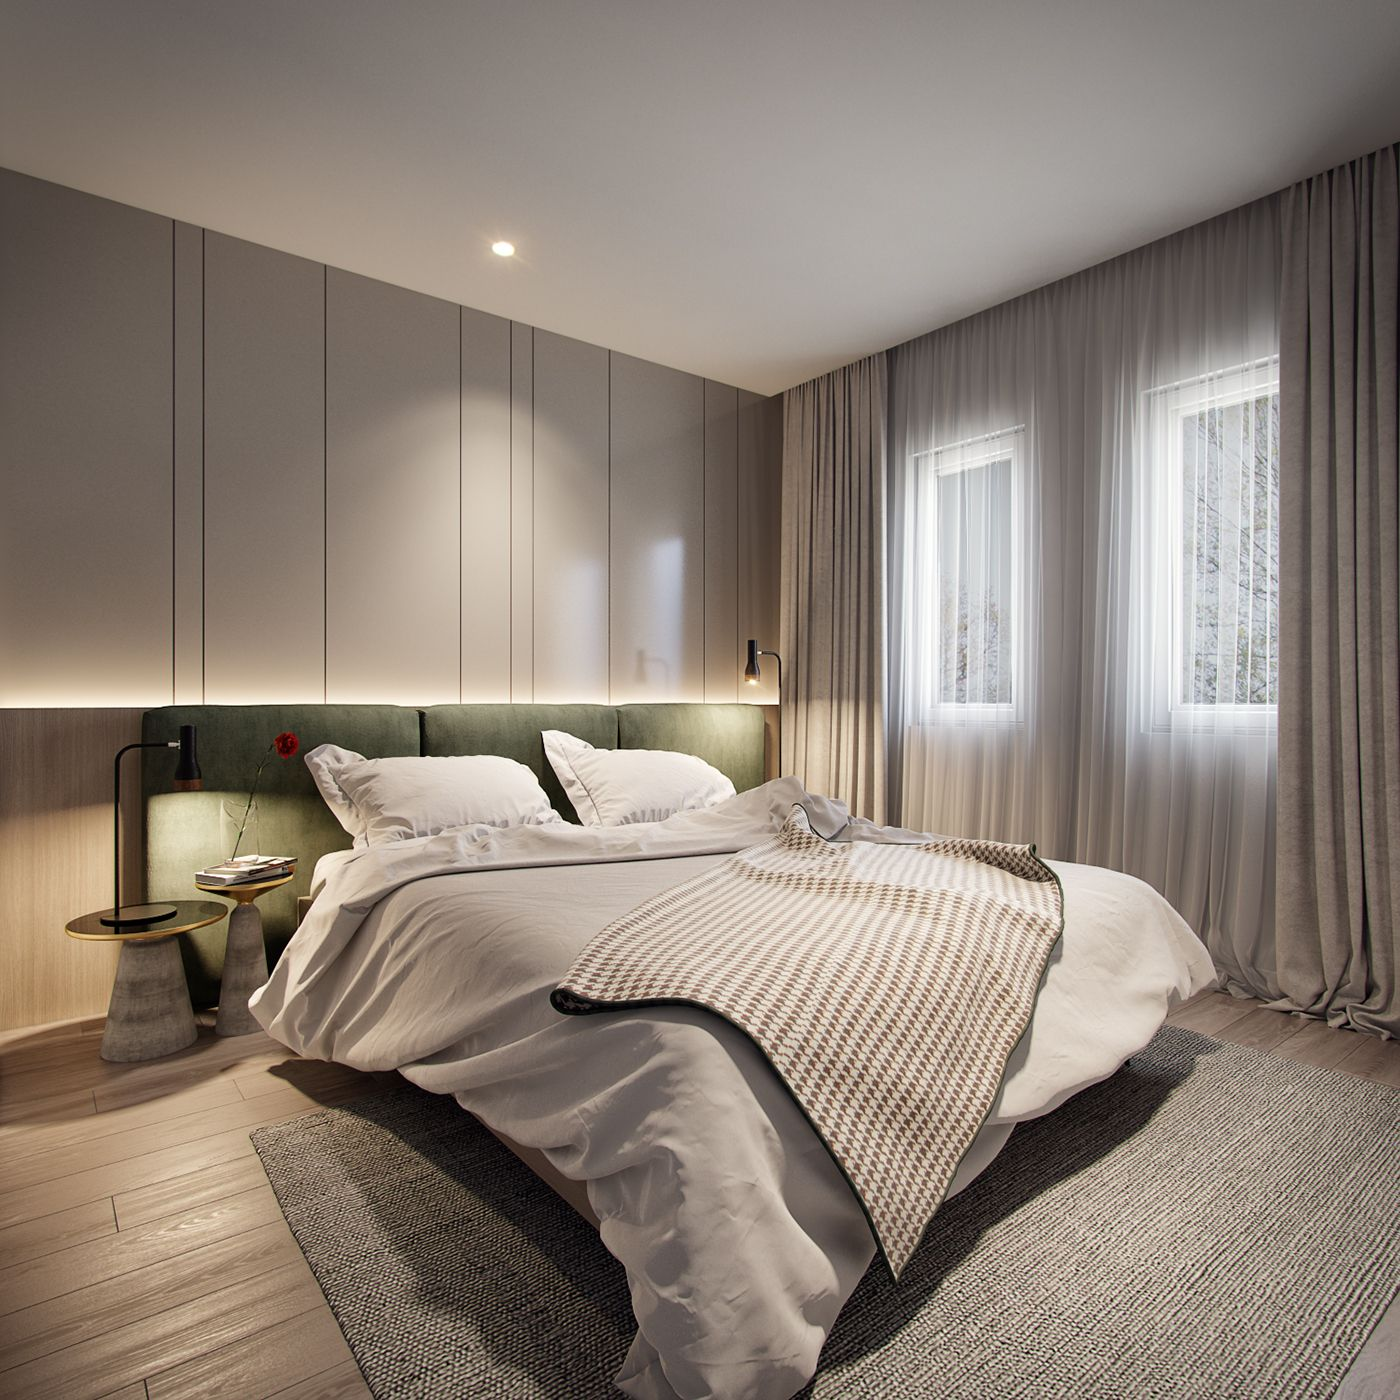 Bedroom In Contemporary Style On Behance: Bedroom Design, Living Room Decor